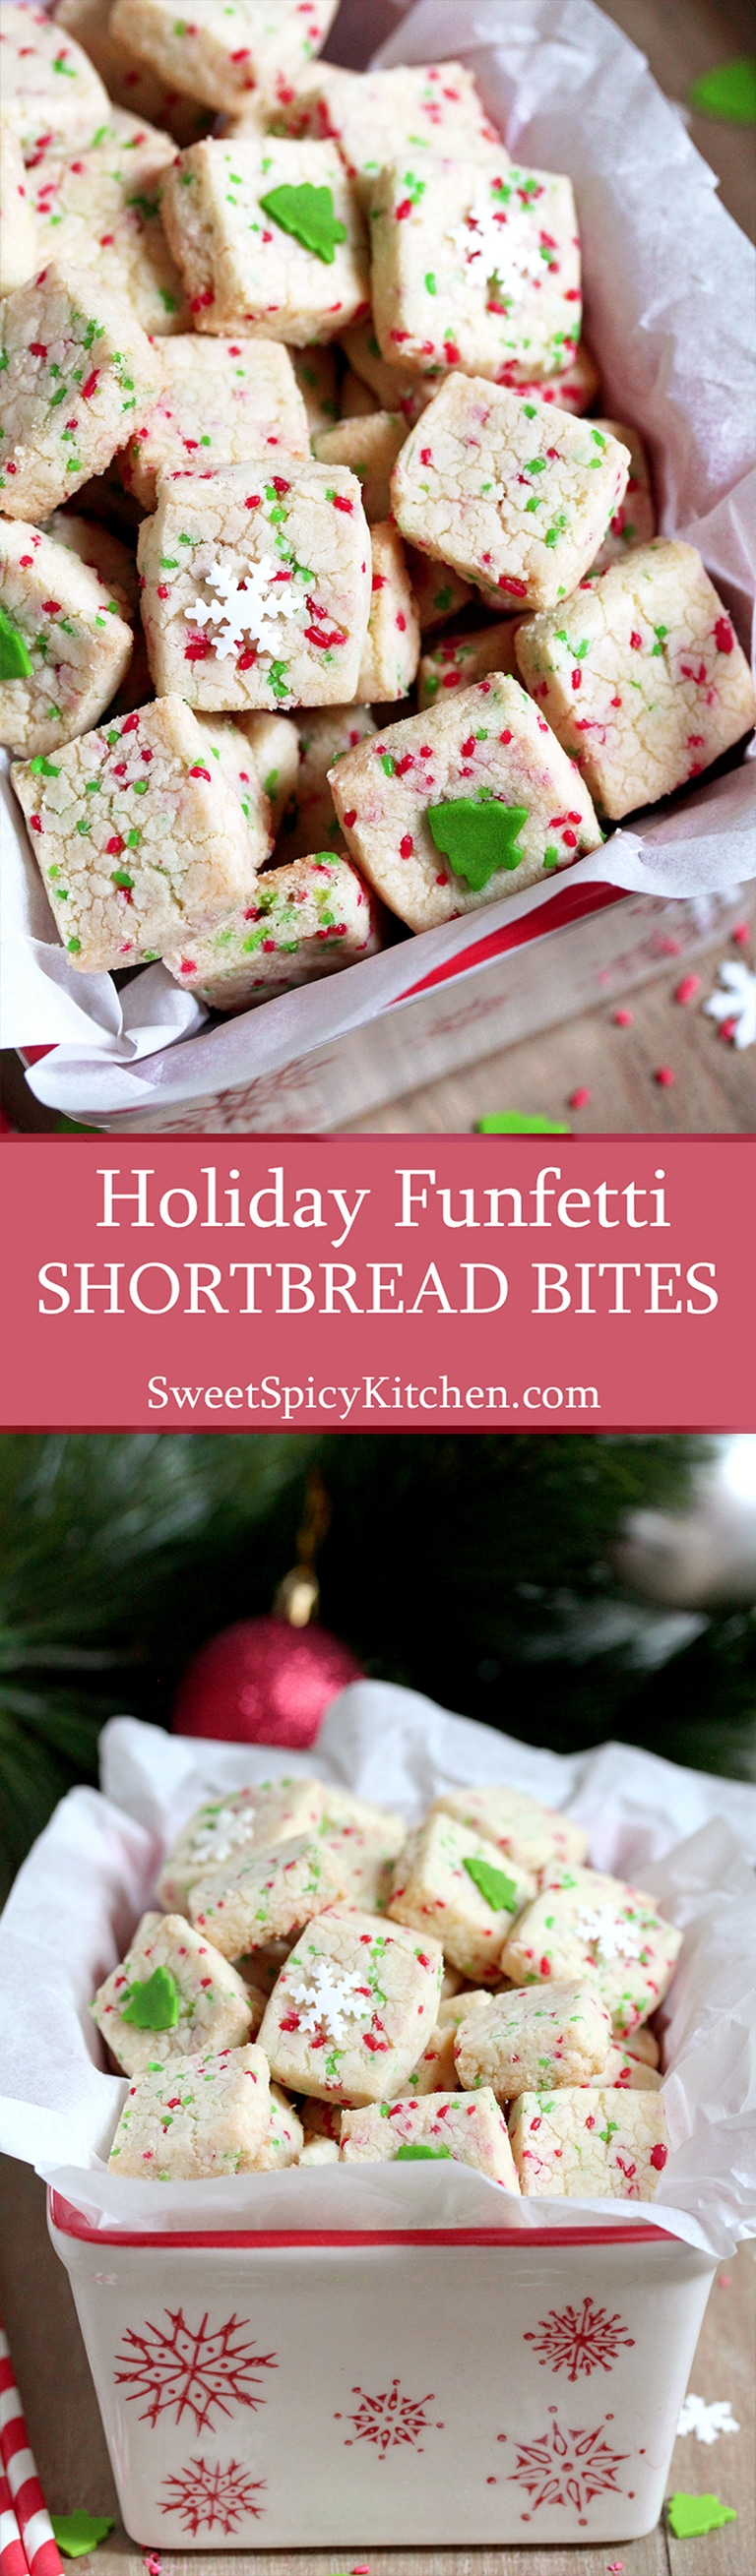 Holiday Funfetti Shortbread Bites – quick & easy, sweet, crunchy bites are perfect for holidays.  Christmas, New Year, Easter, Fourth of July – just make sure to match the sprinkles color with the holiday.